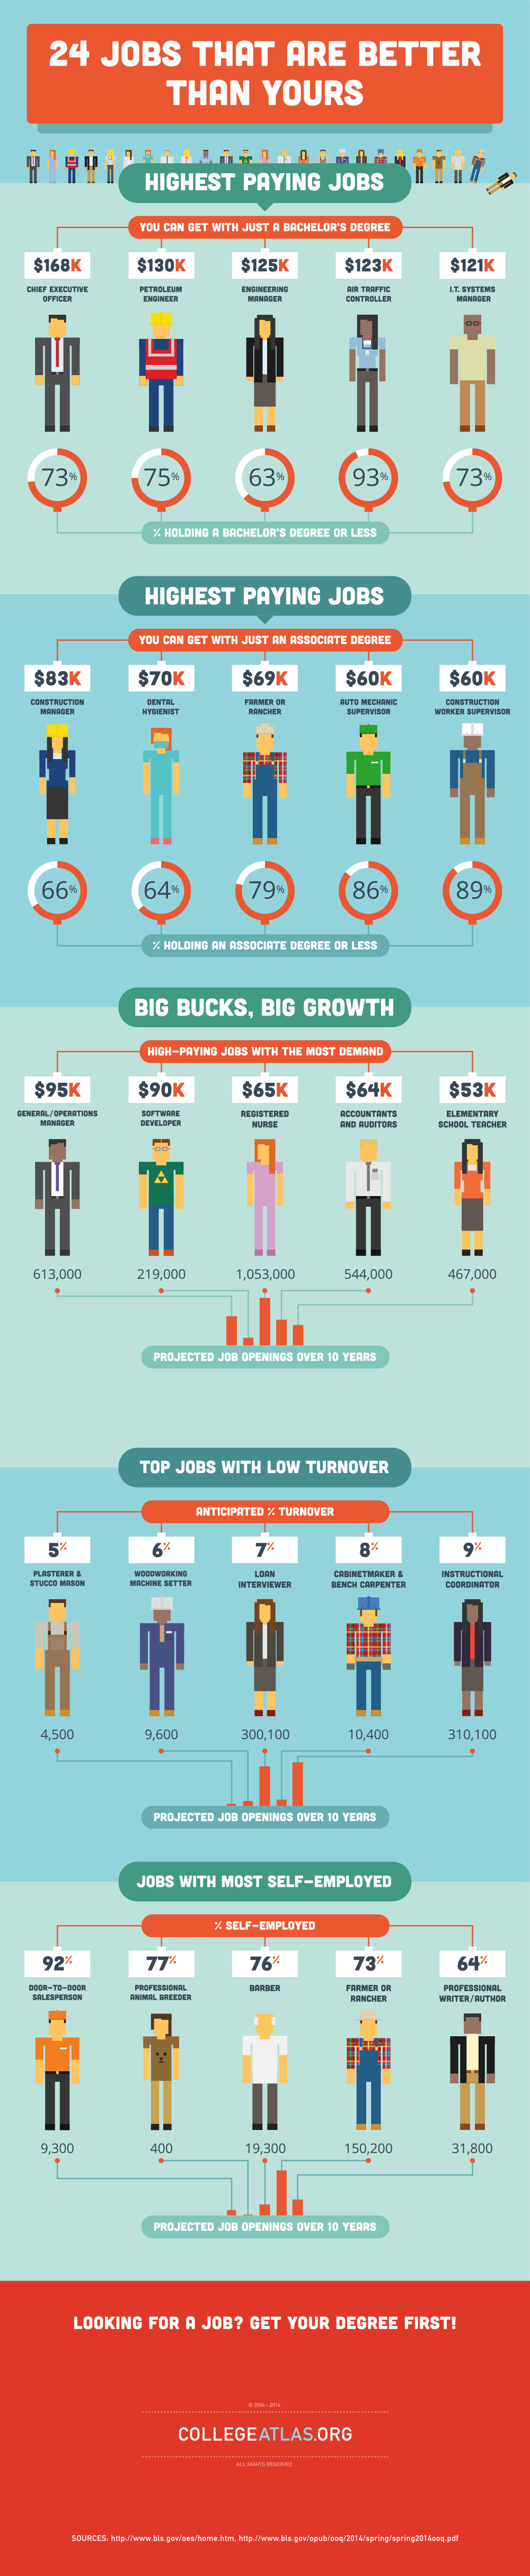 24 jobs that pay the big bucks infographic courtesy of collegeatlas photo of piggy bank courtesy of shutterstock